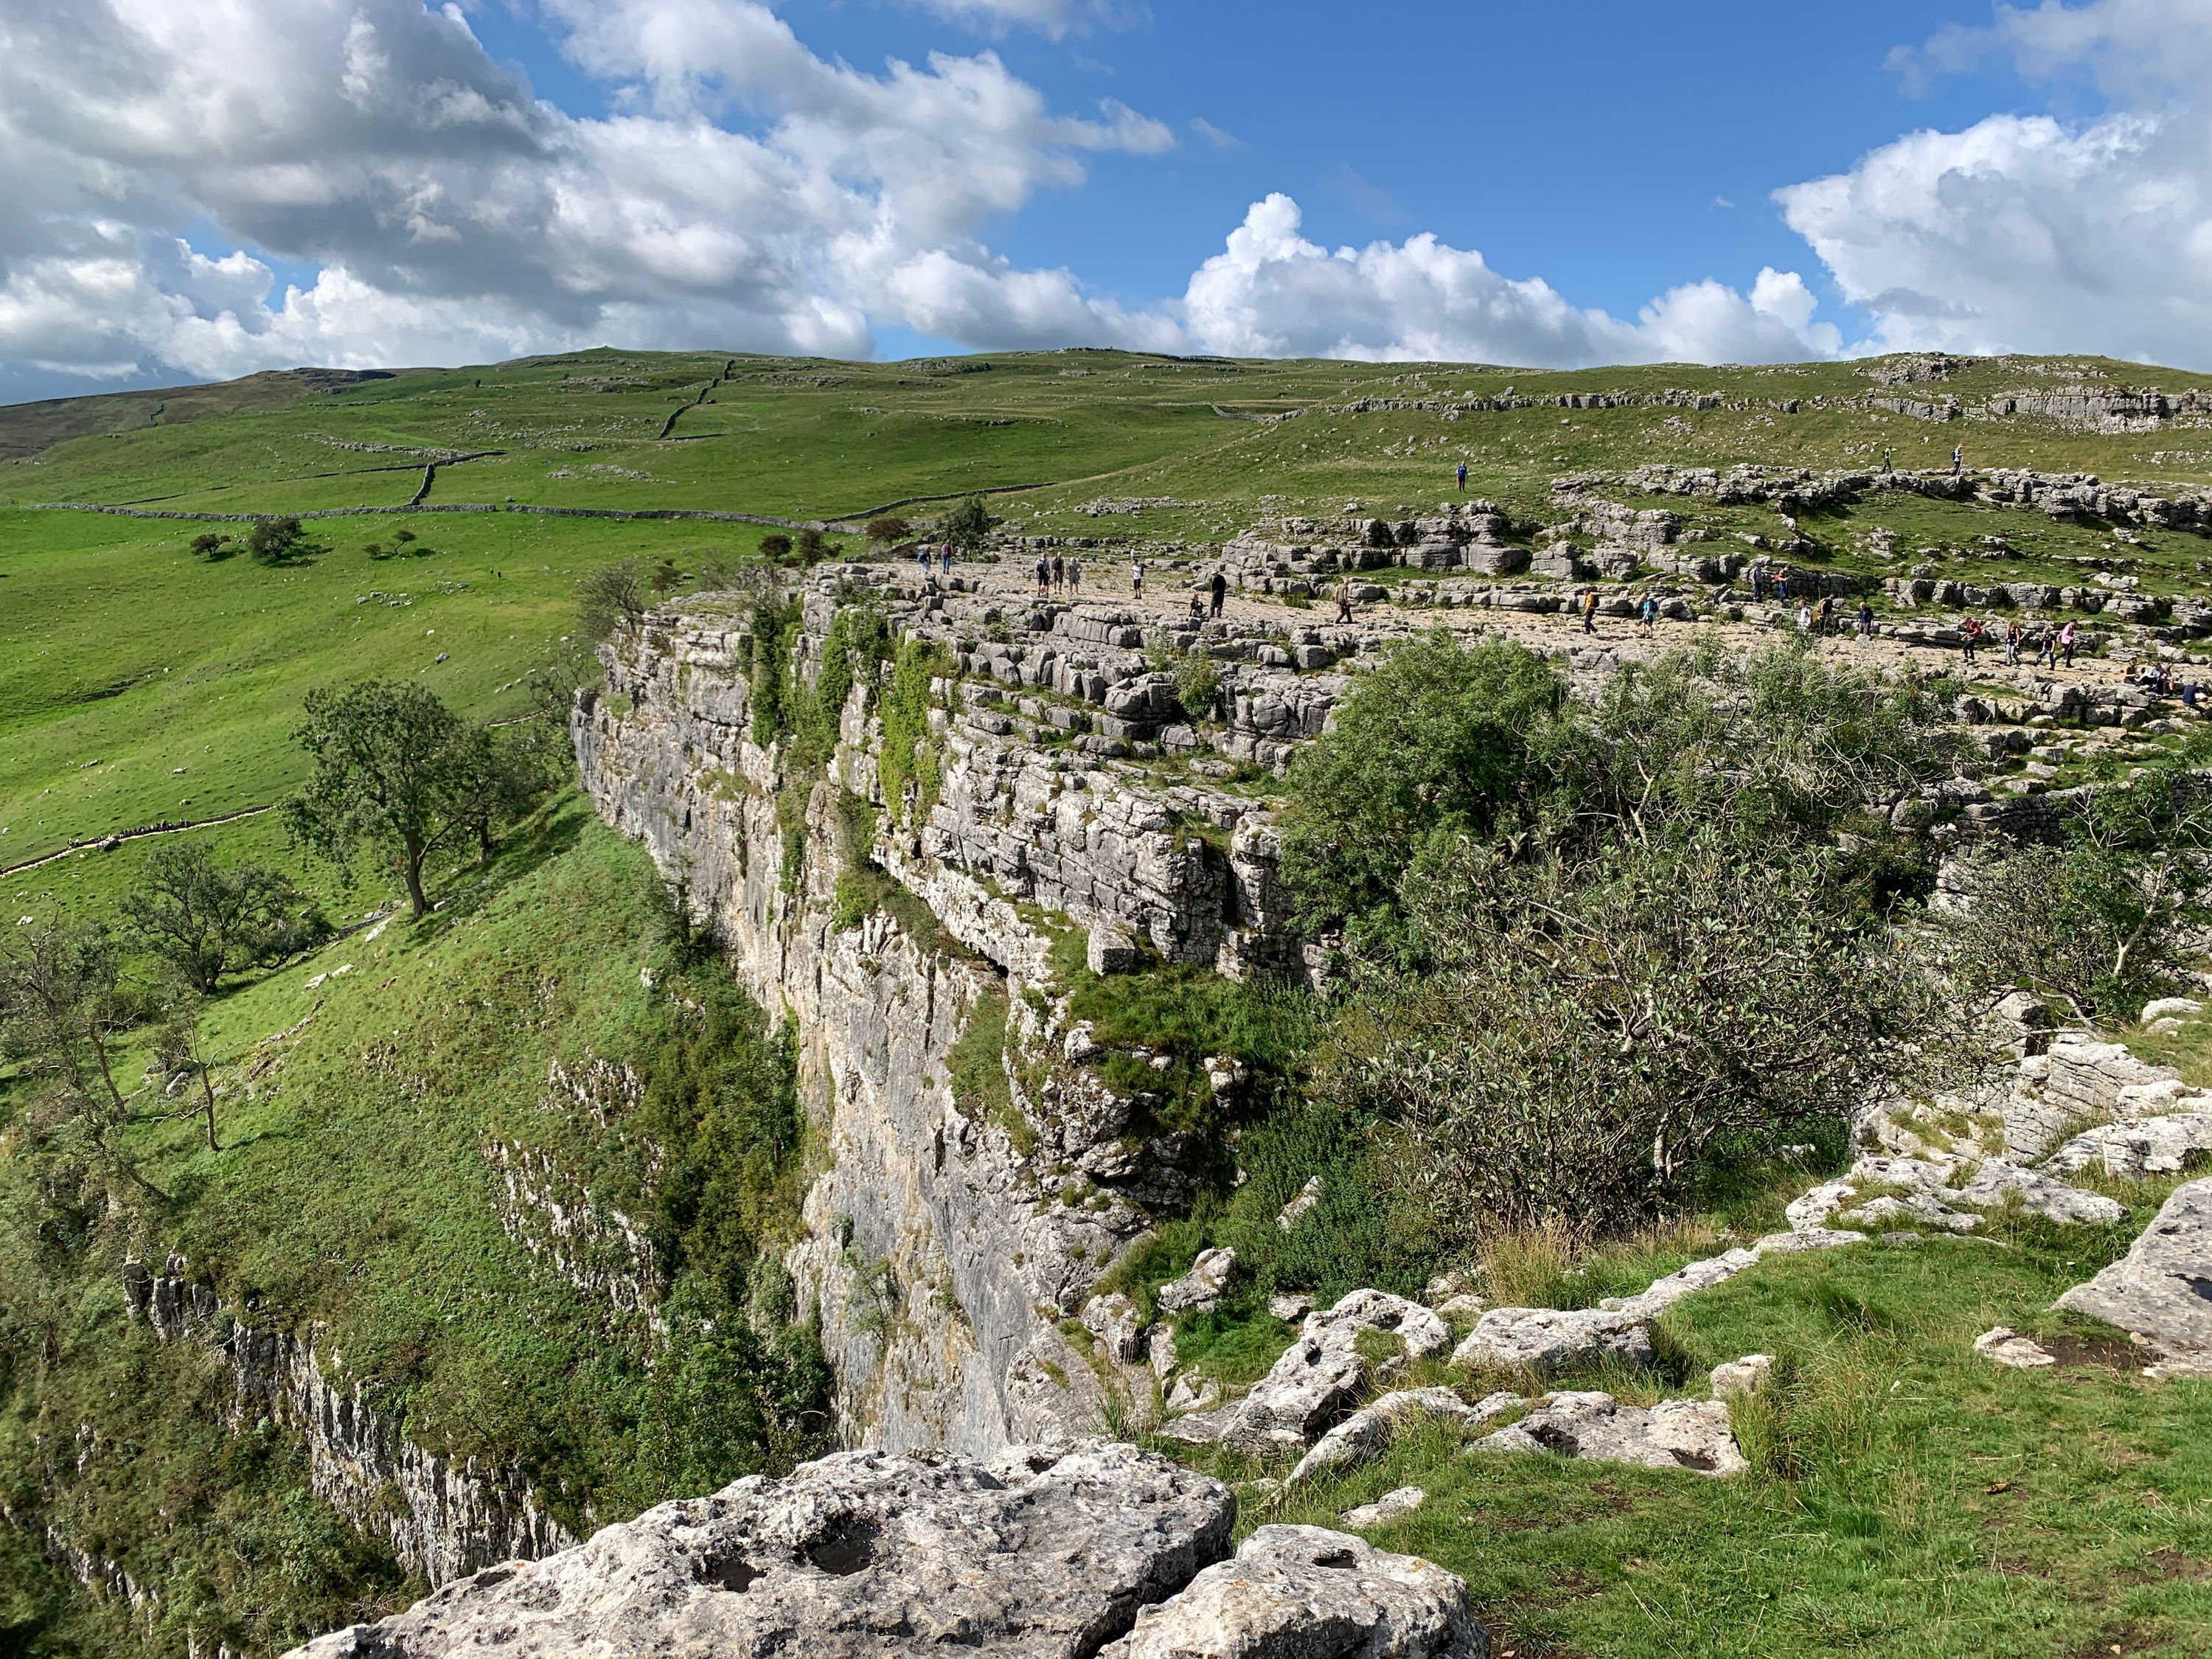 Other side of Malham Cove from the top